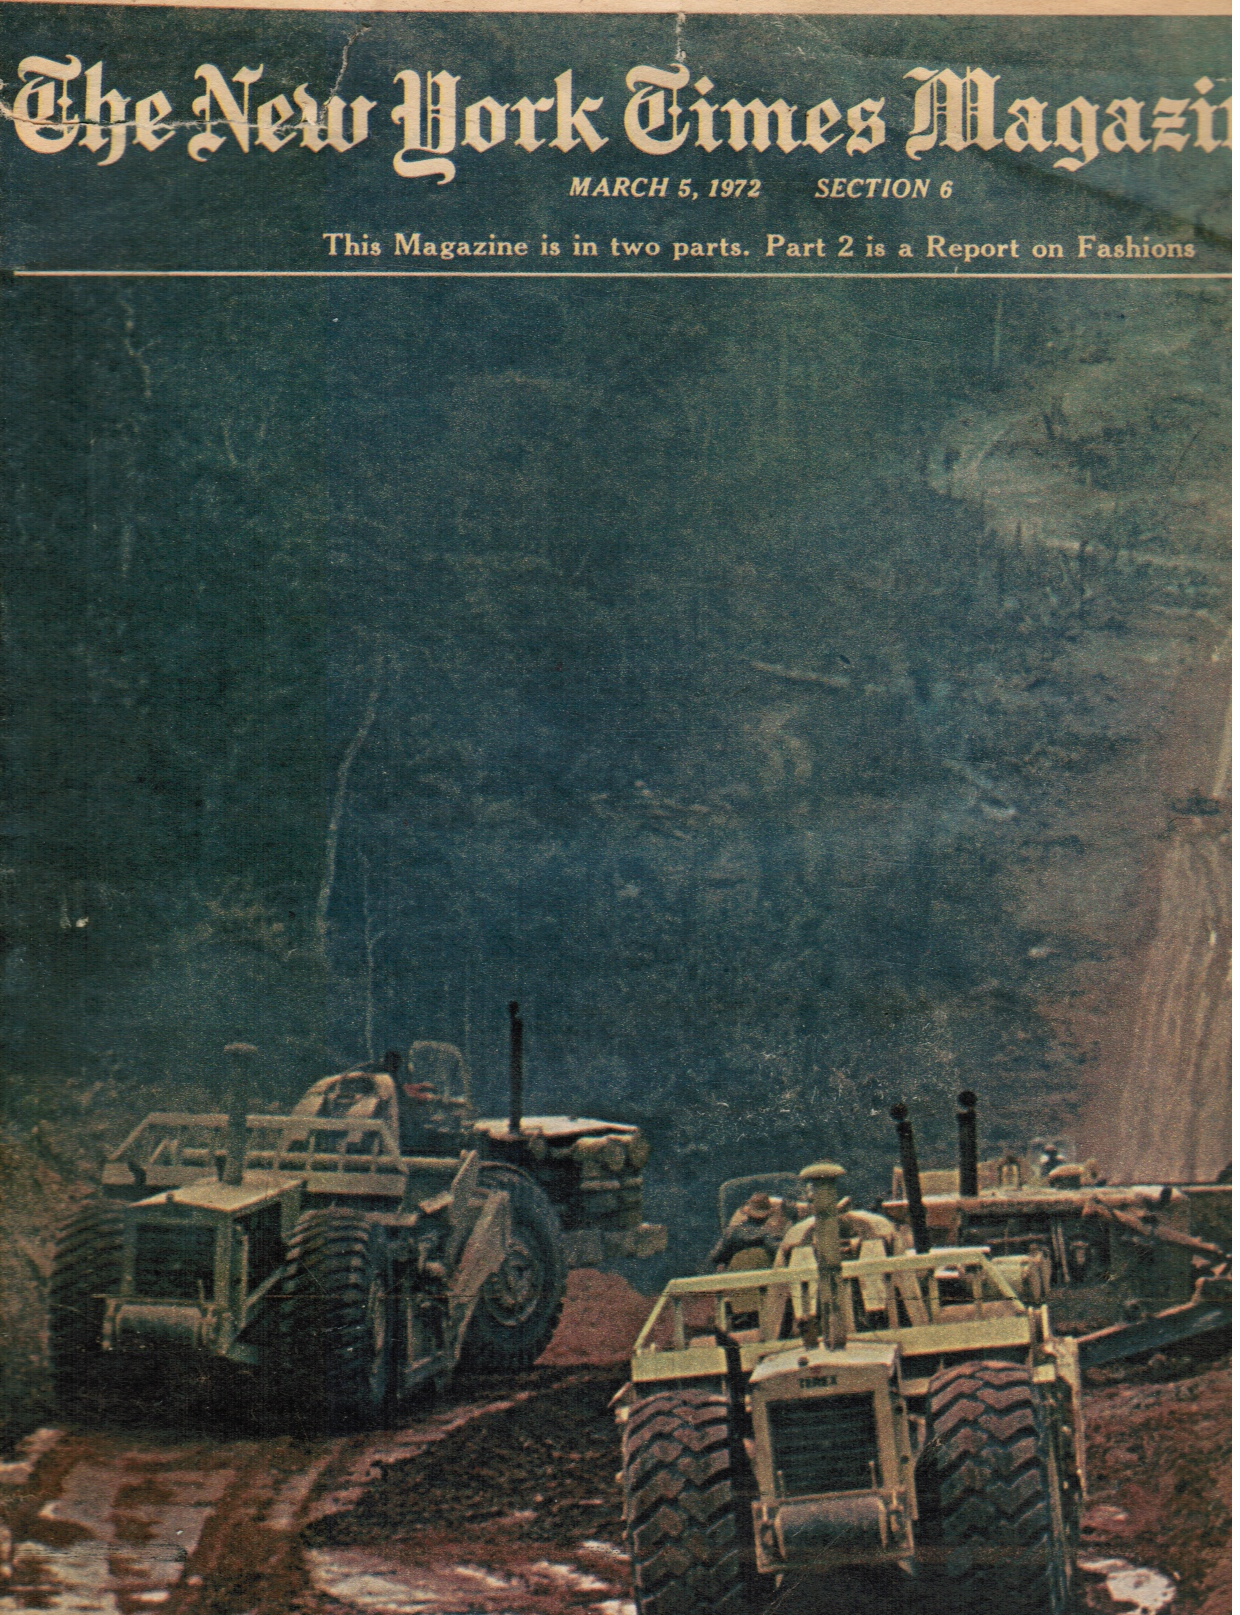 Image for 1972 - the New York Times Magazine: March 5, 1972 Amazon Jungle (Cover)